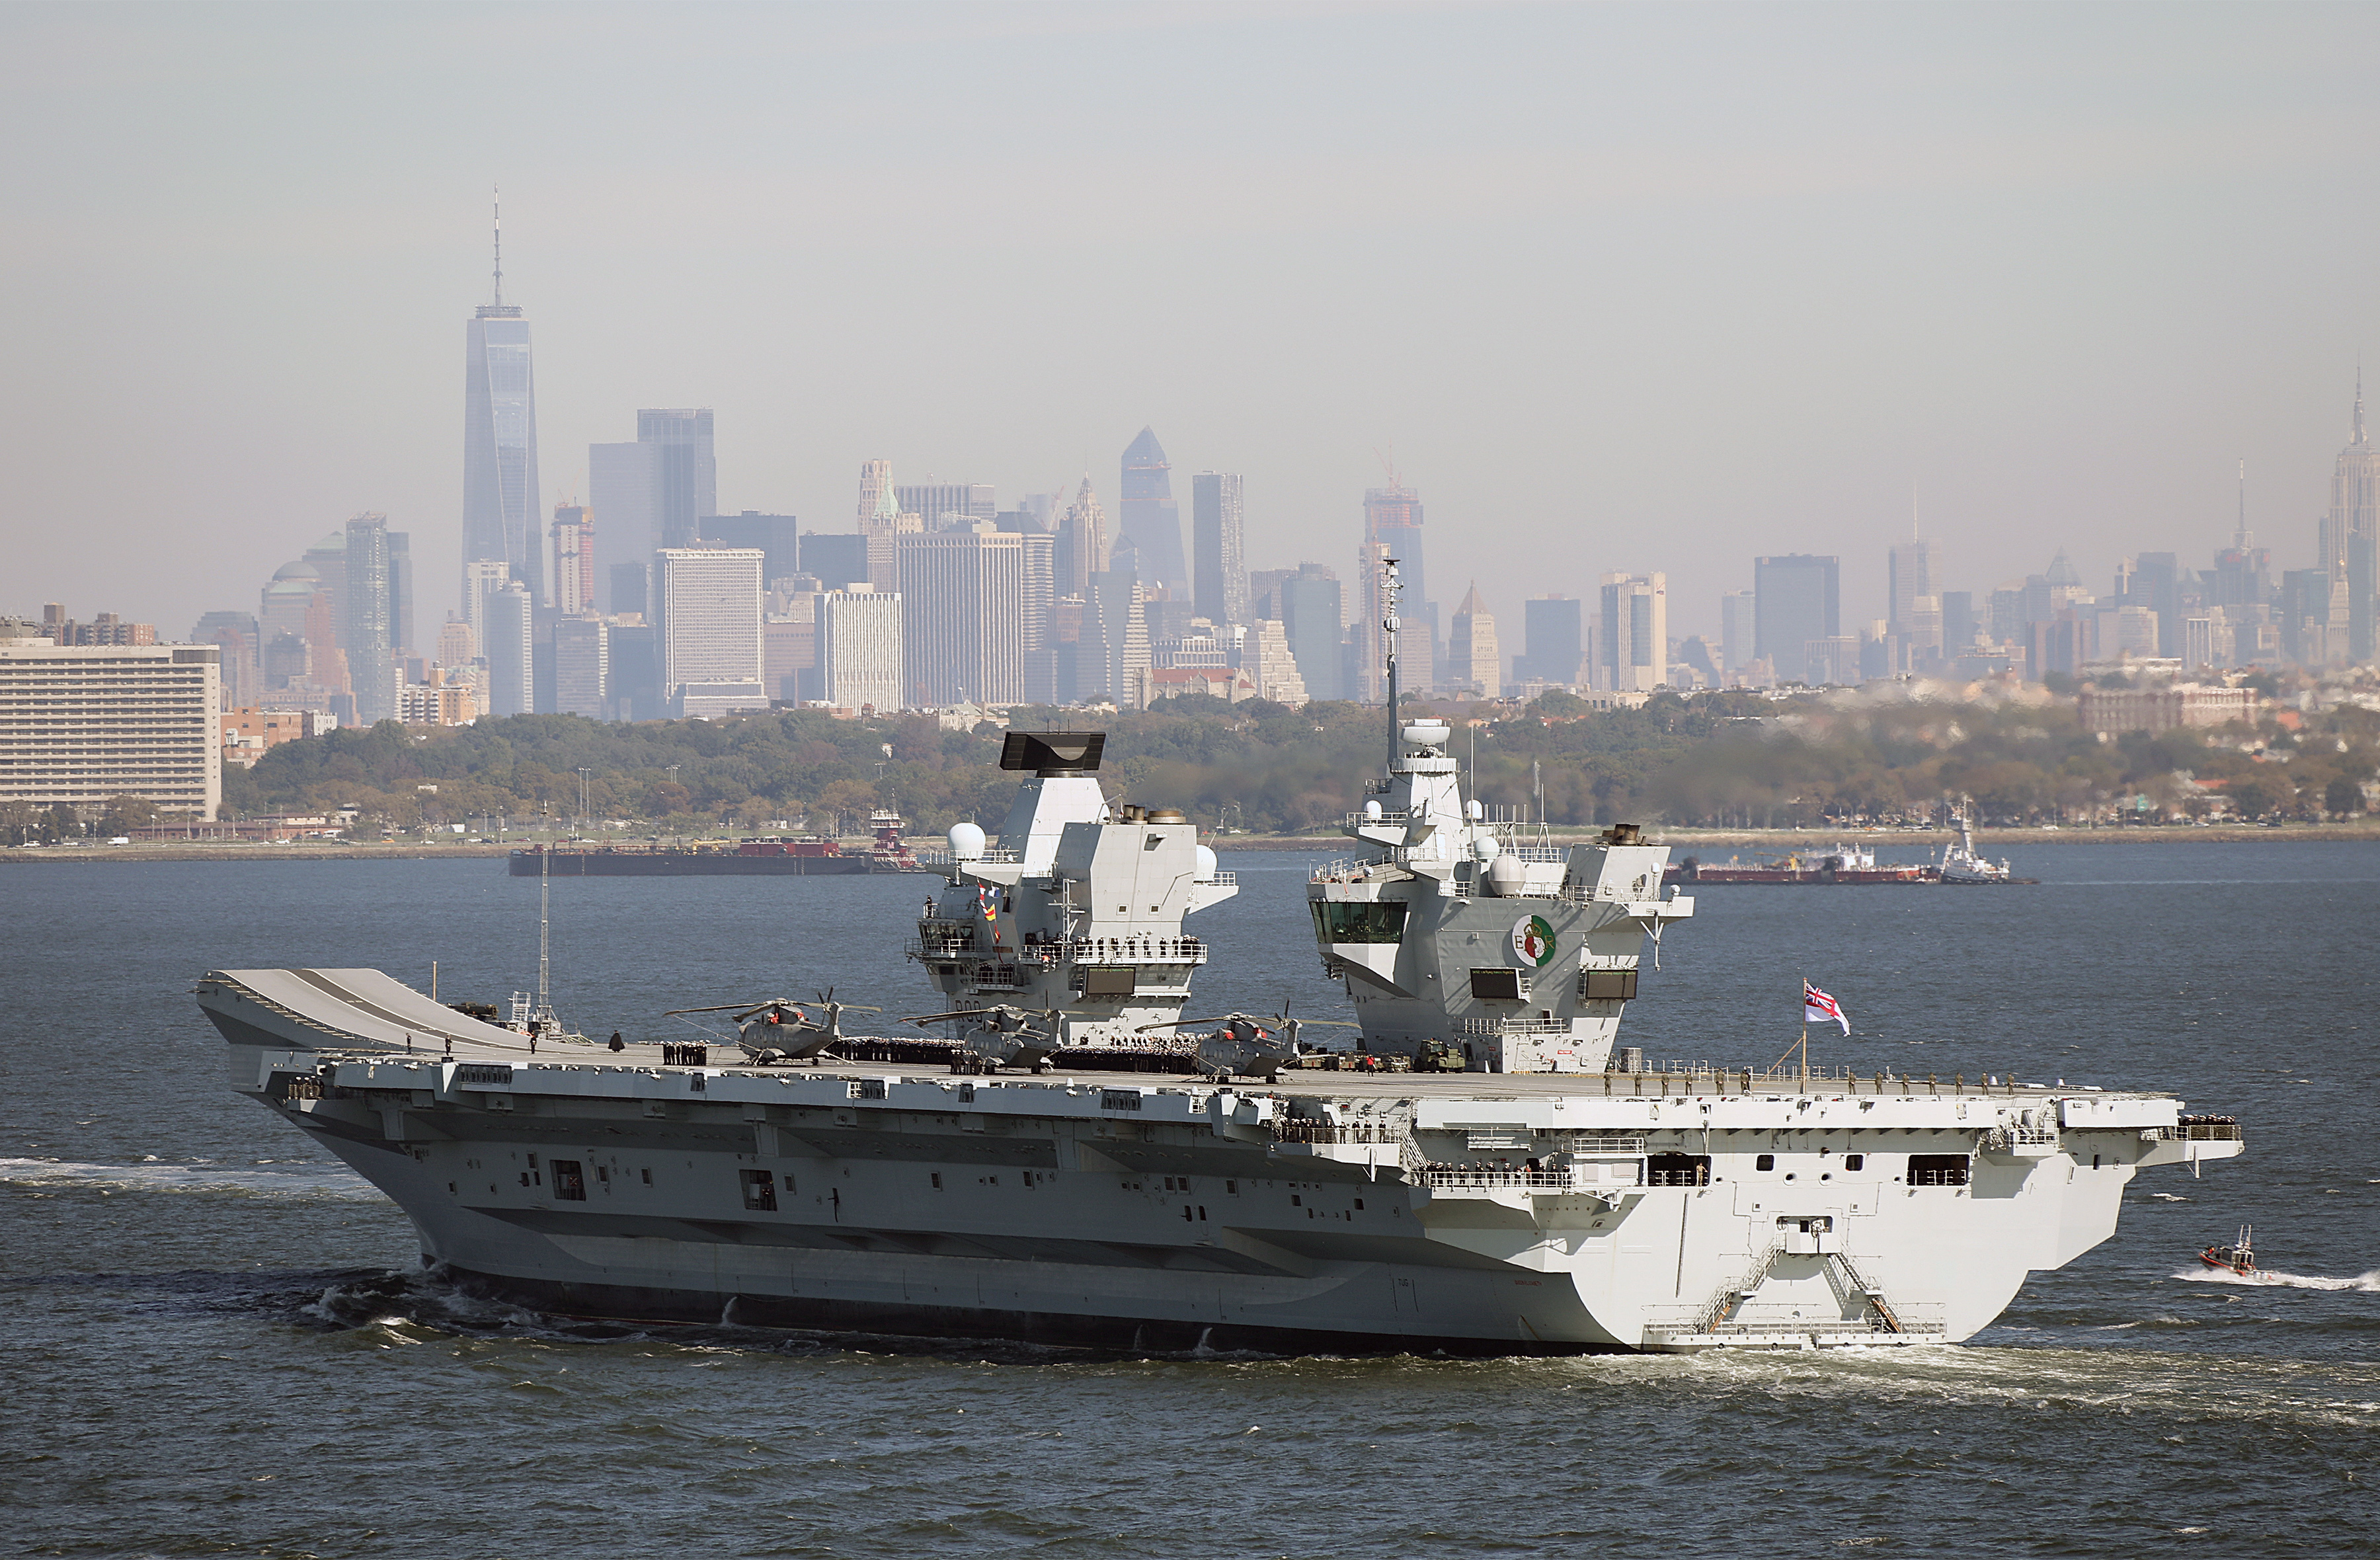 HMS Queen Elizabeth arriving last week in New York, Photographs MoD Crown Copyright 2018 ©, featured in Africa PORTS & SHIPS maritime news